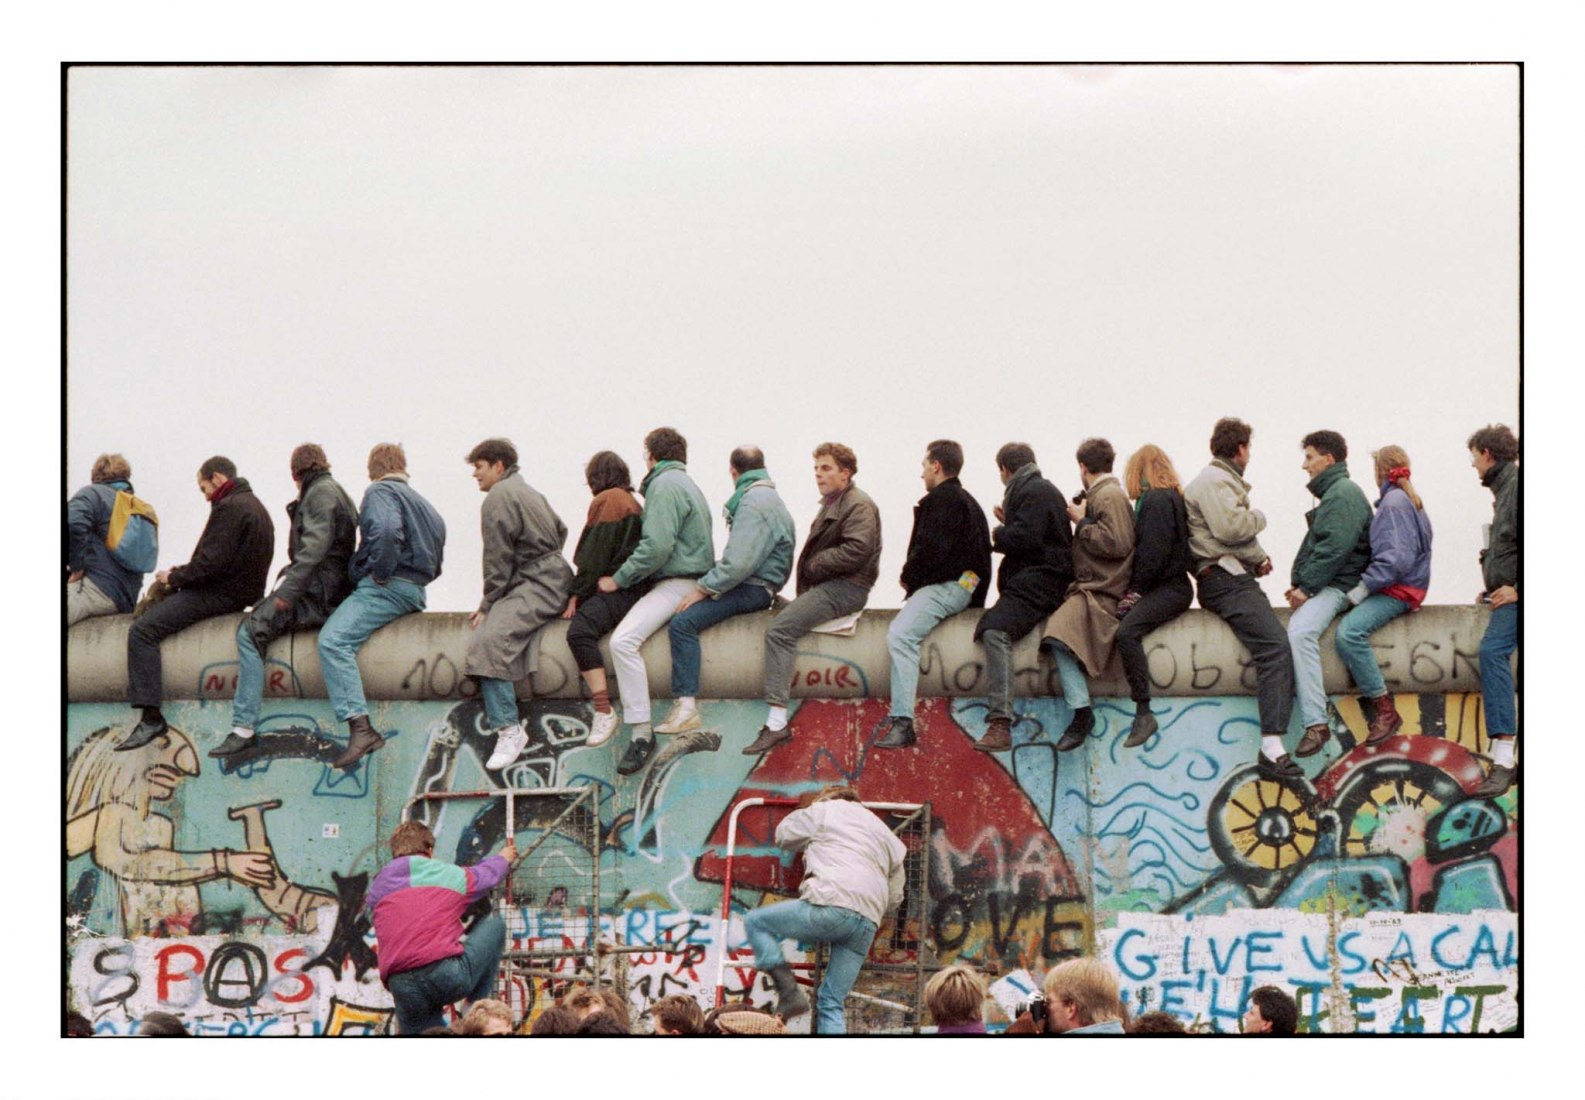 Fall of the Wall in Berlin, 12 November 1989. Photograph by © Tim Wegner / laif